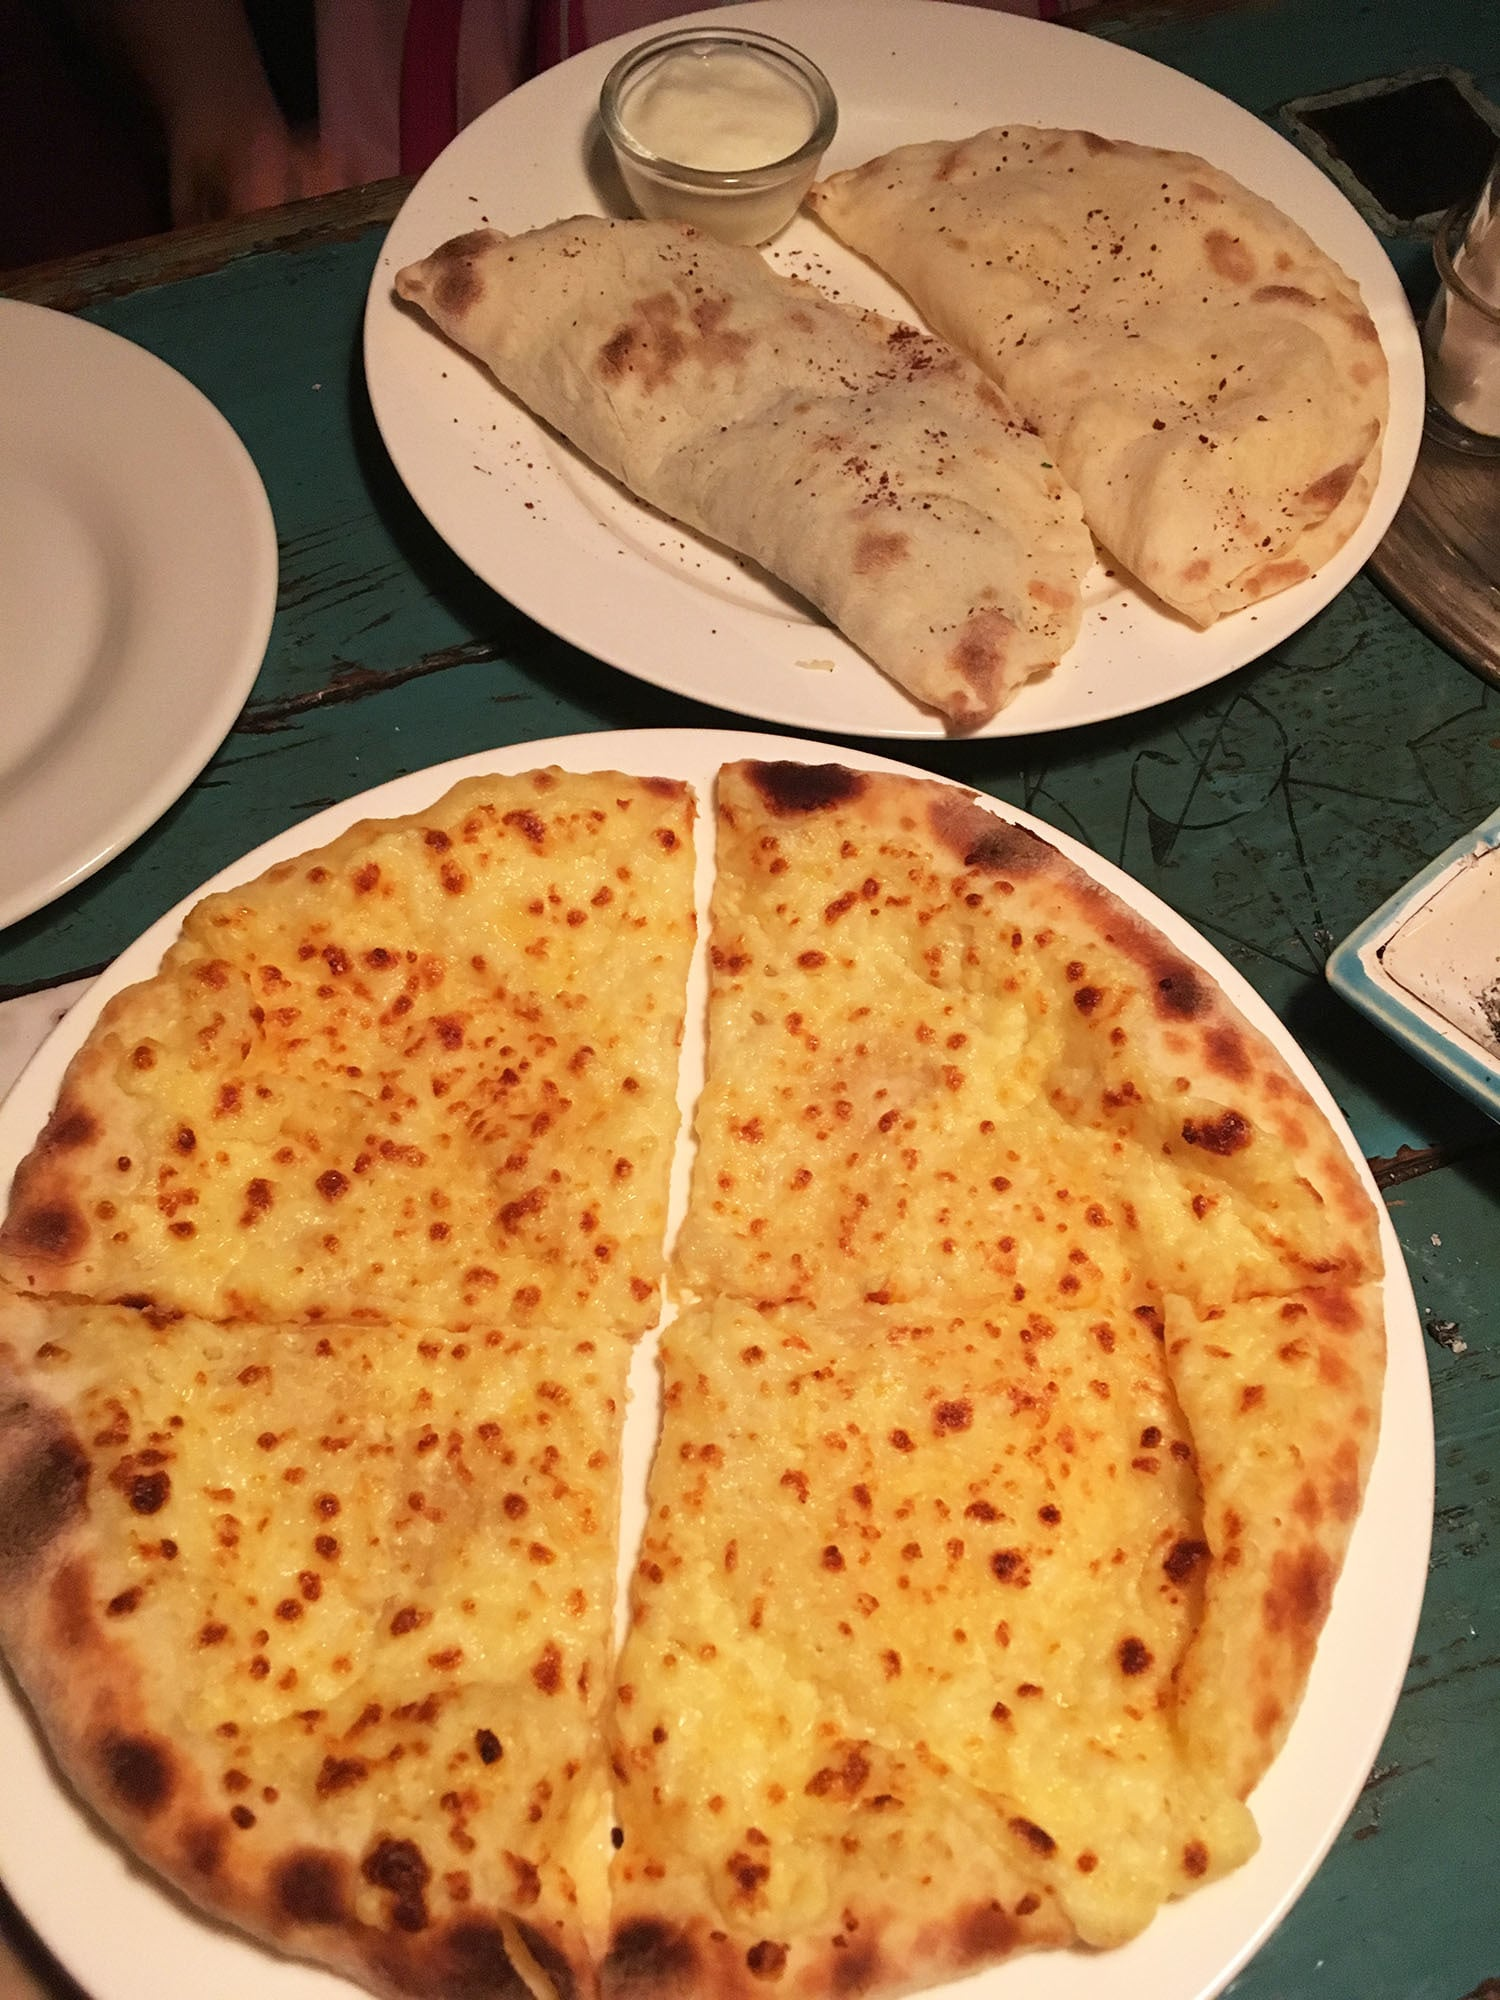 Having cheese-filled khachapuri bread.